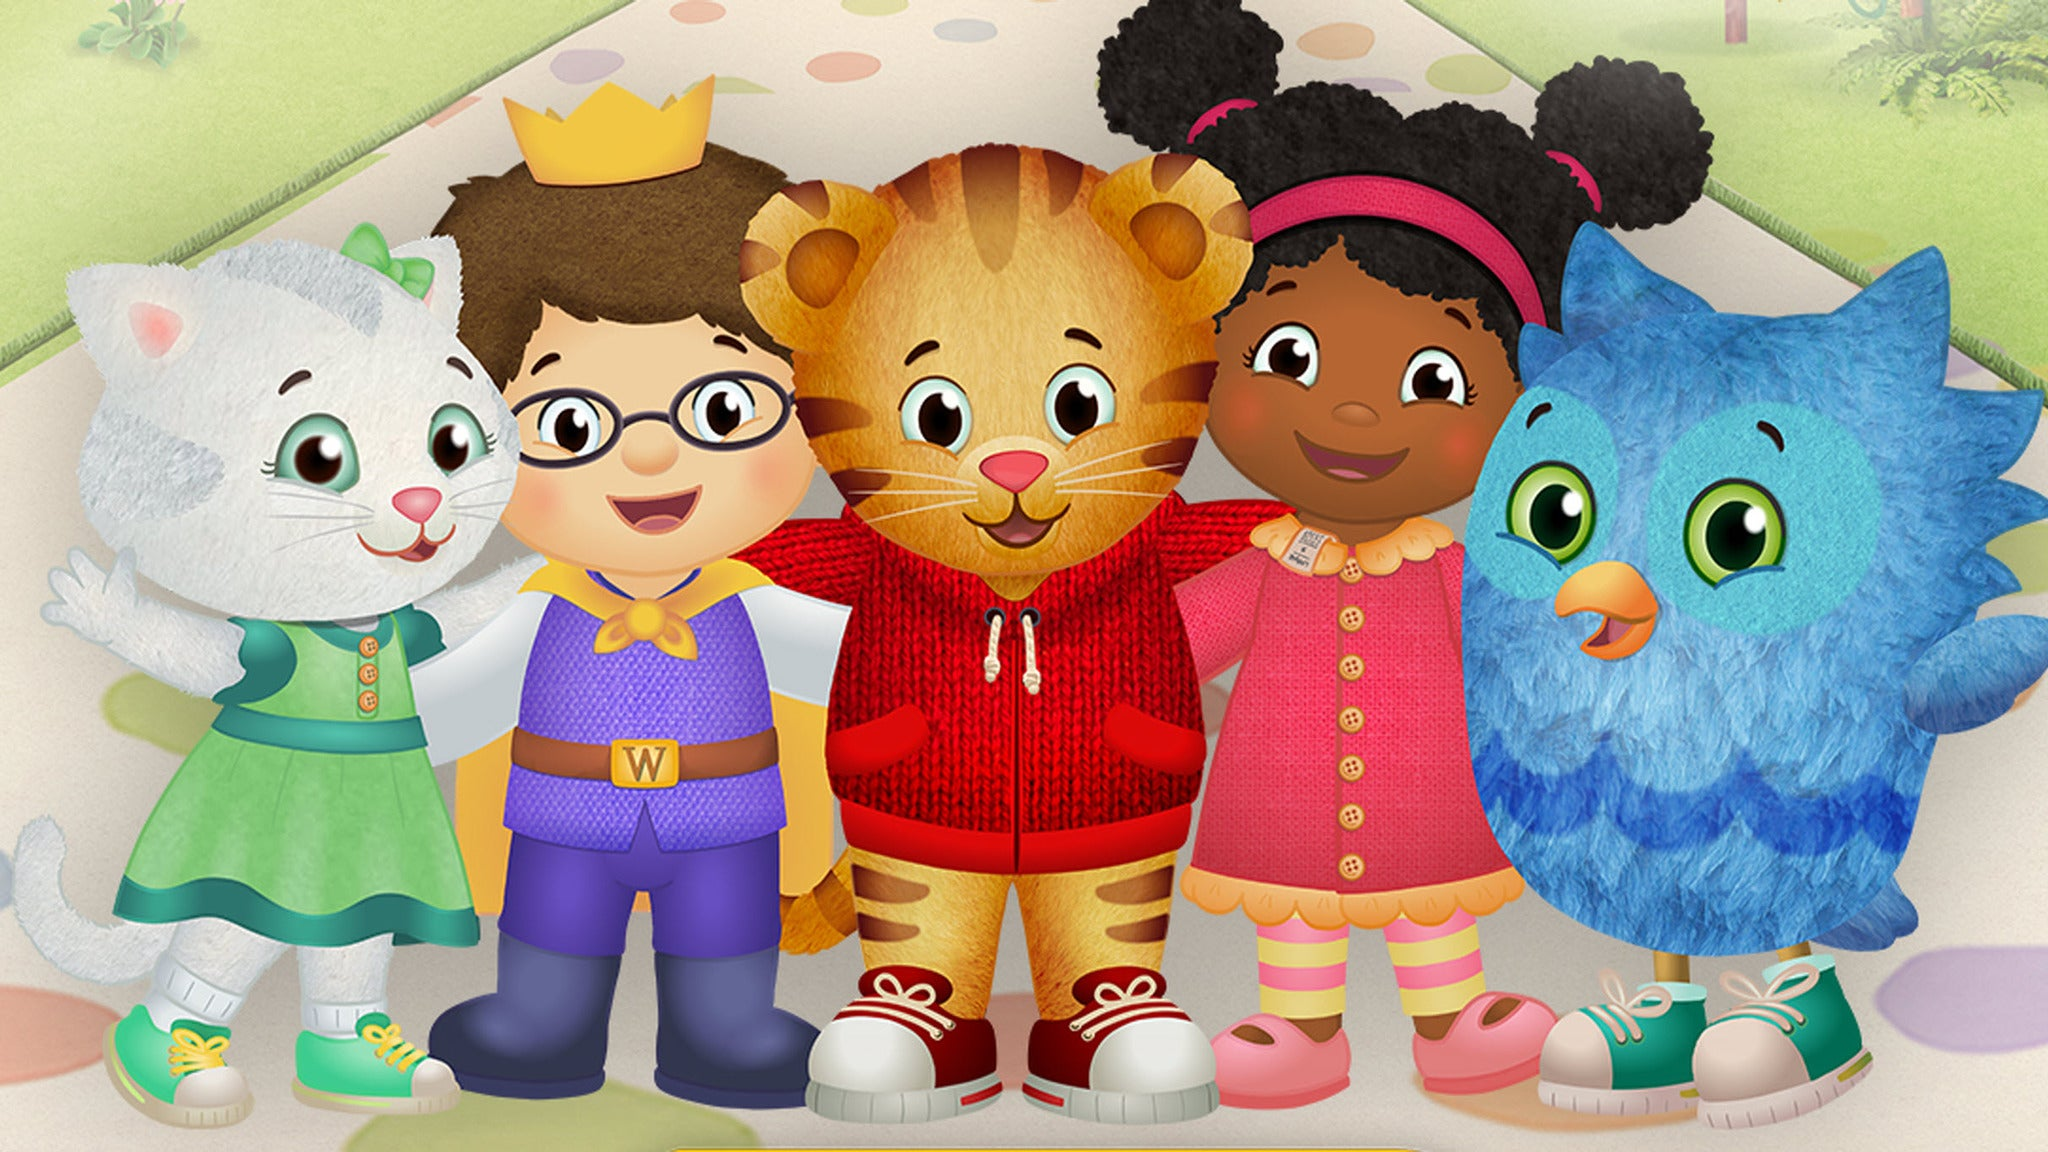 Daniel Tiger's Neighborhood at F.M. Kirby Center